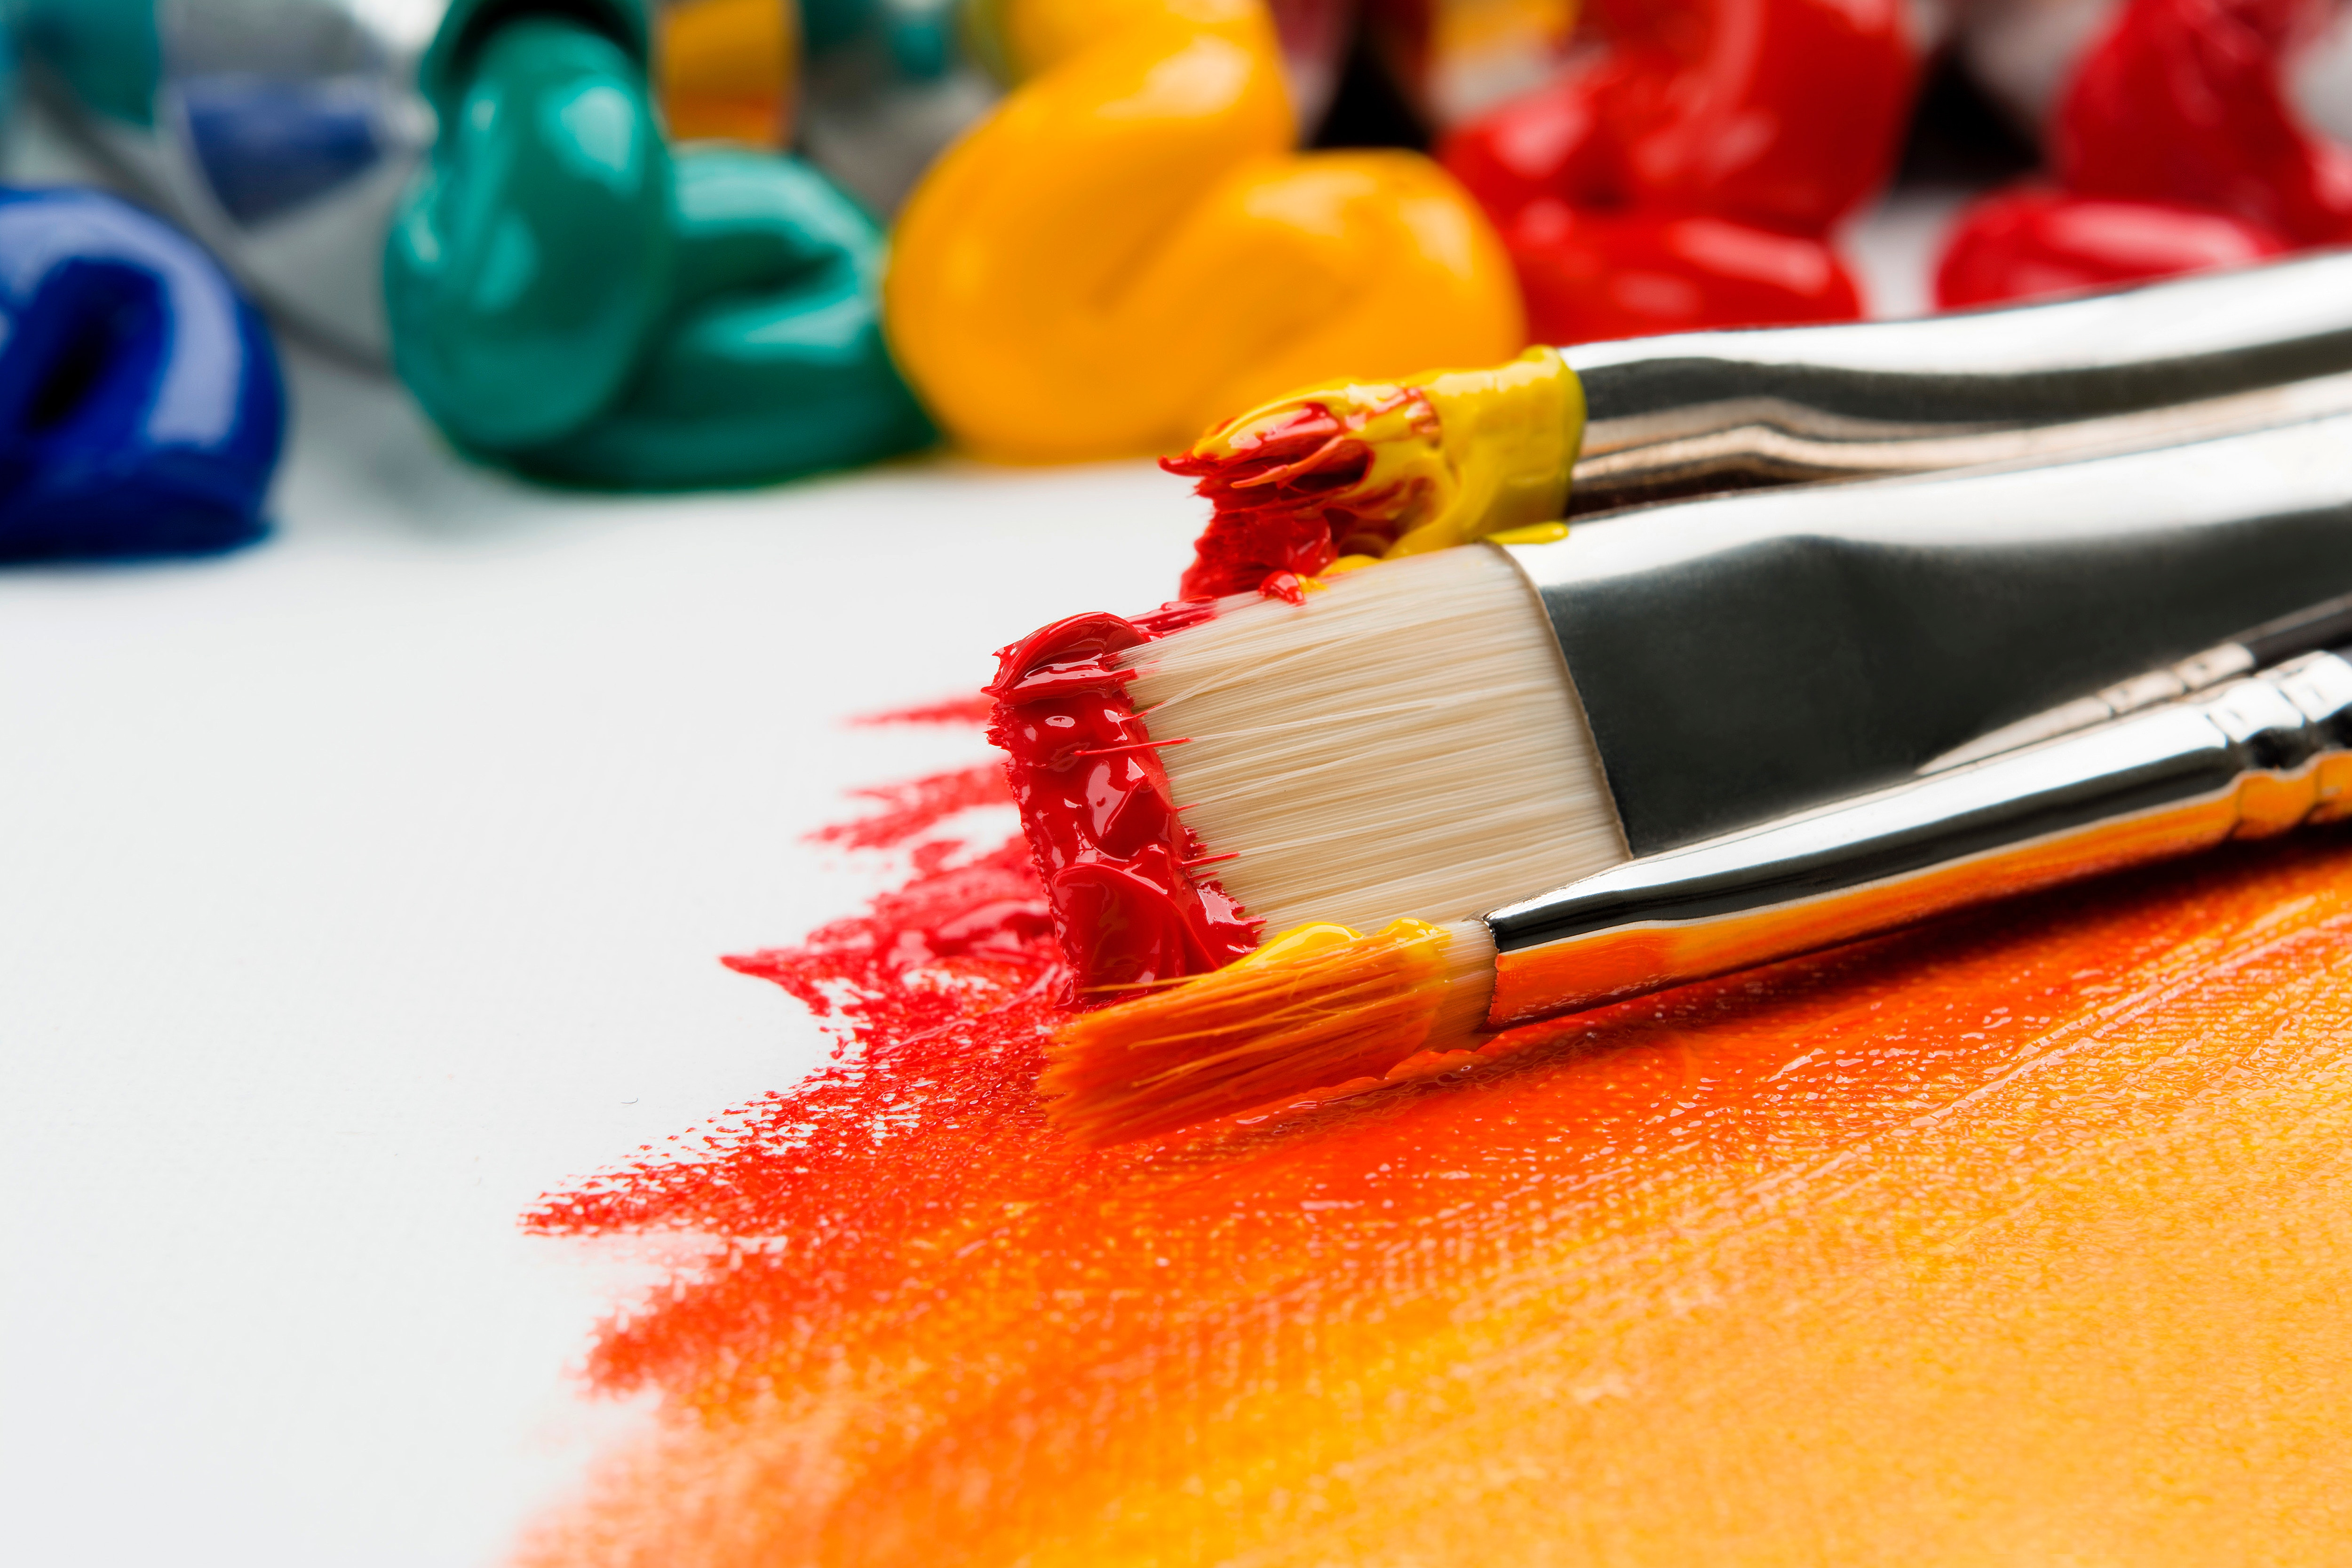 Paintbrushes dipped in yellow and red